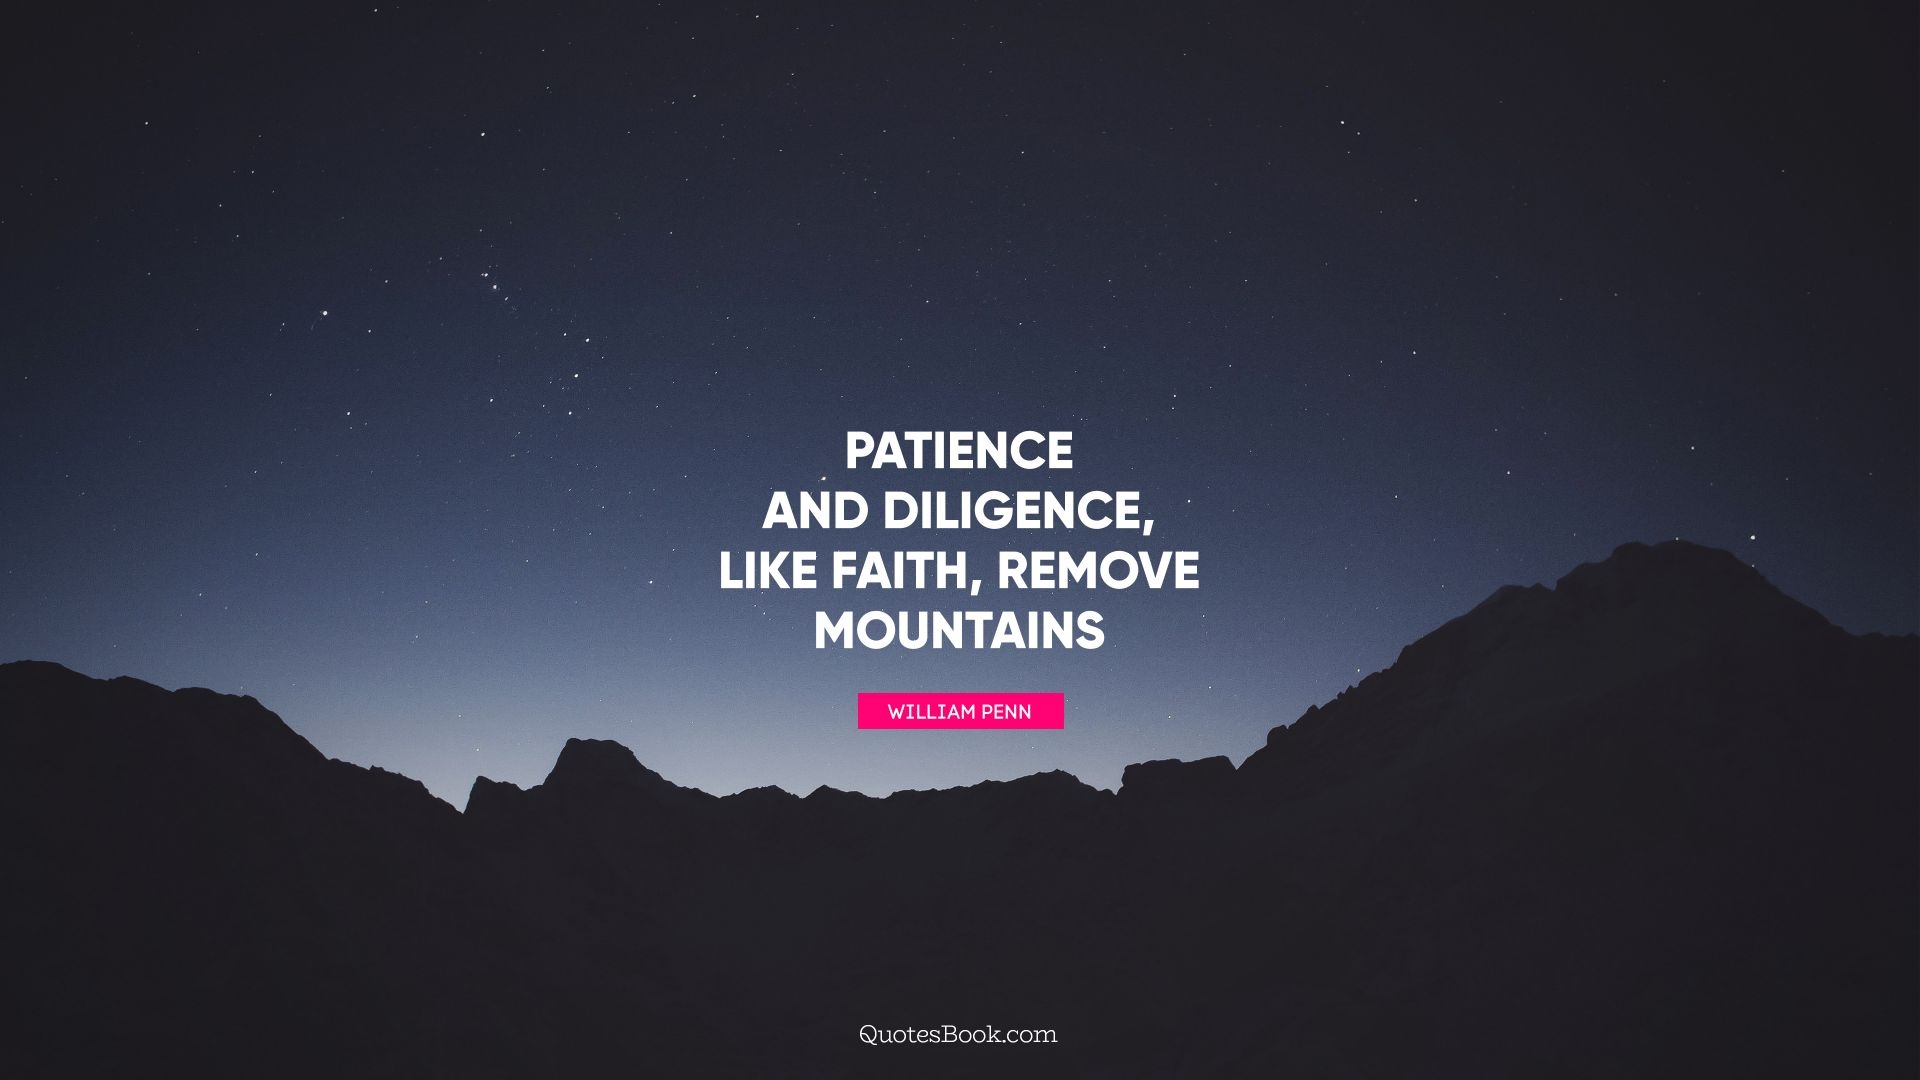 Patience and Diligence, like faith, remove mountains. - Quote by William Penn